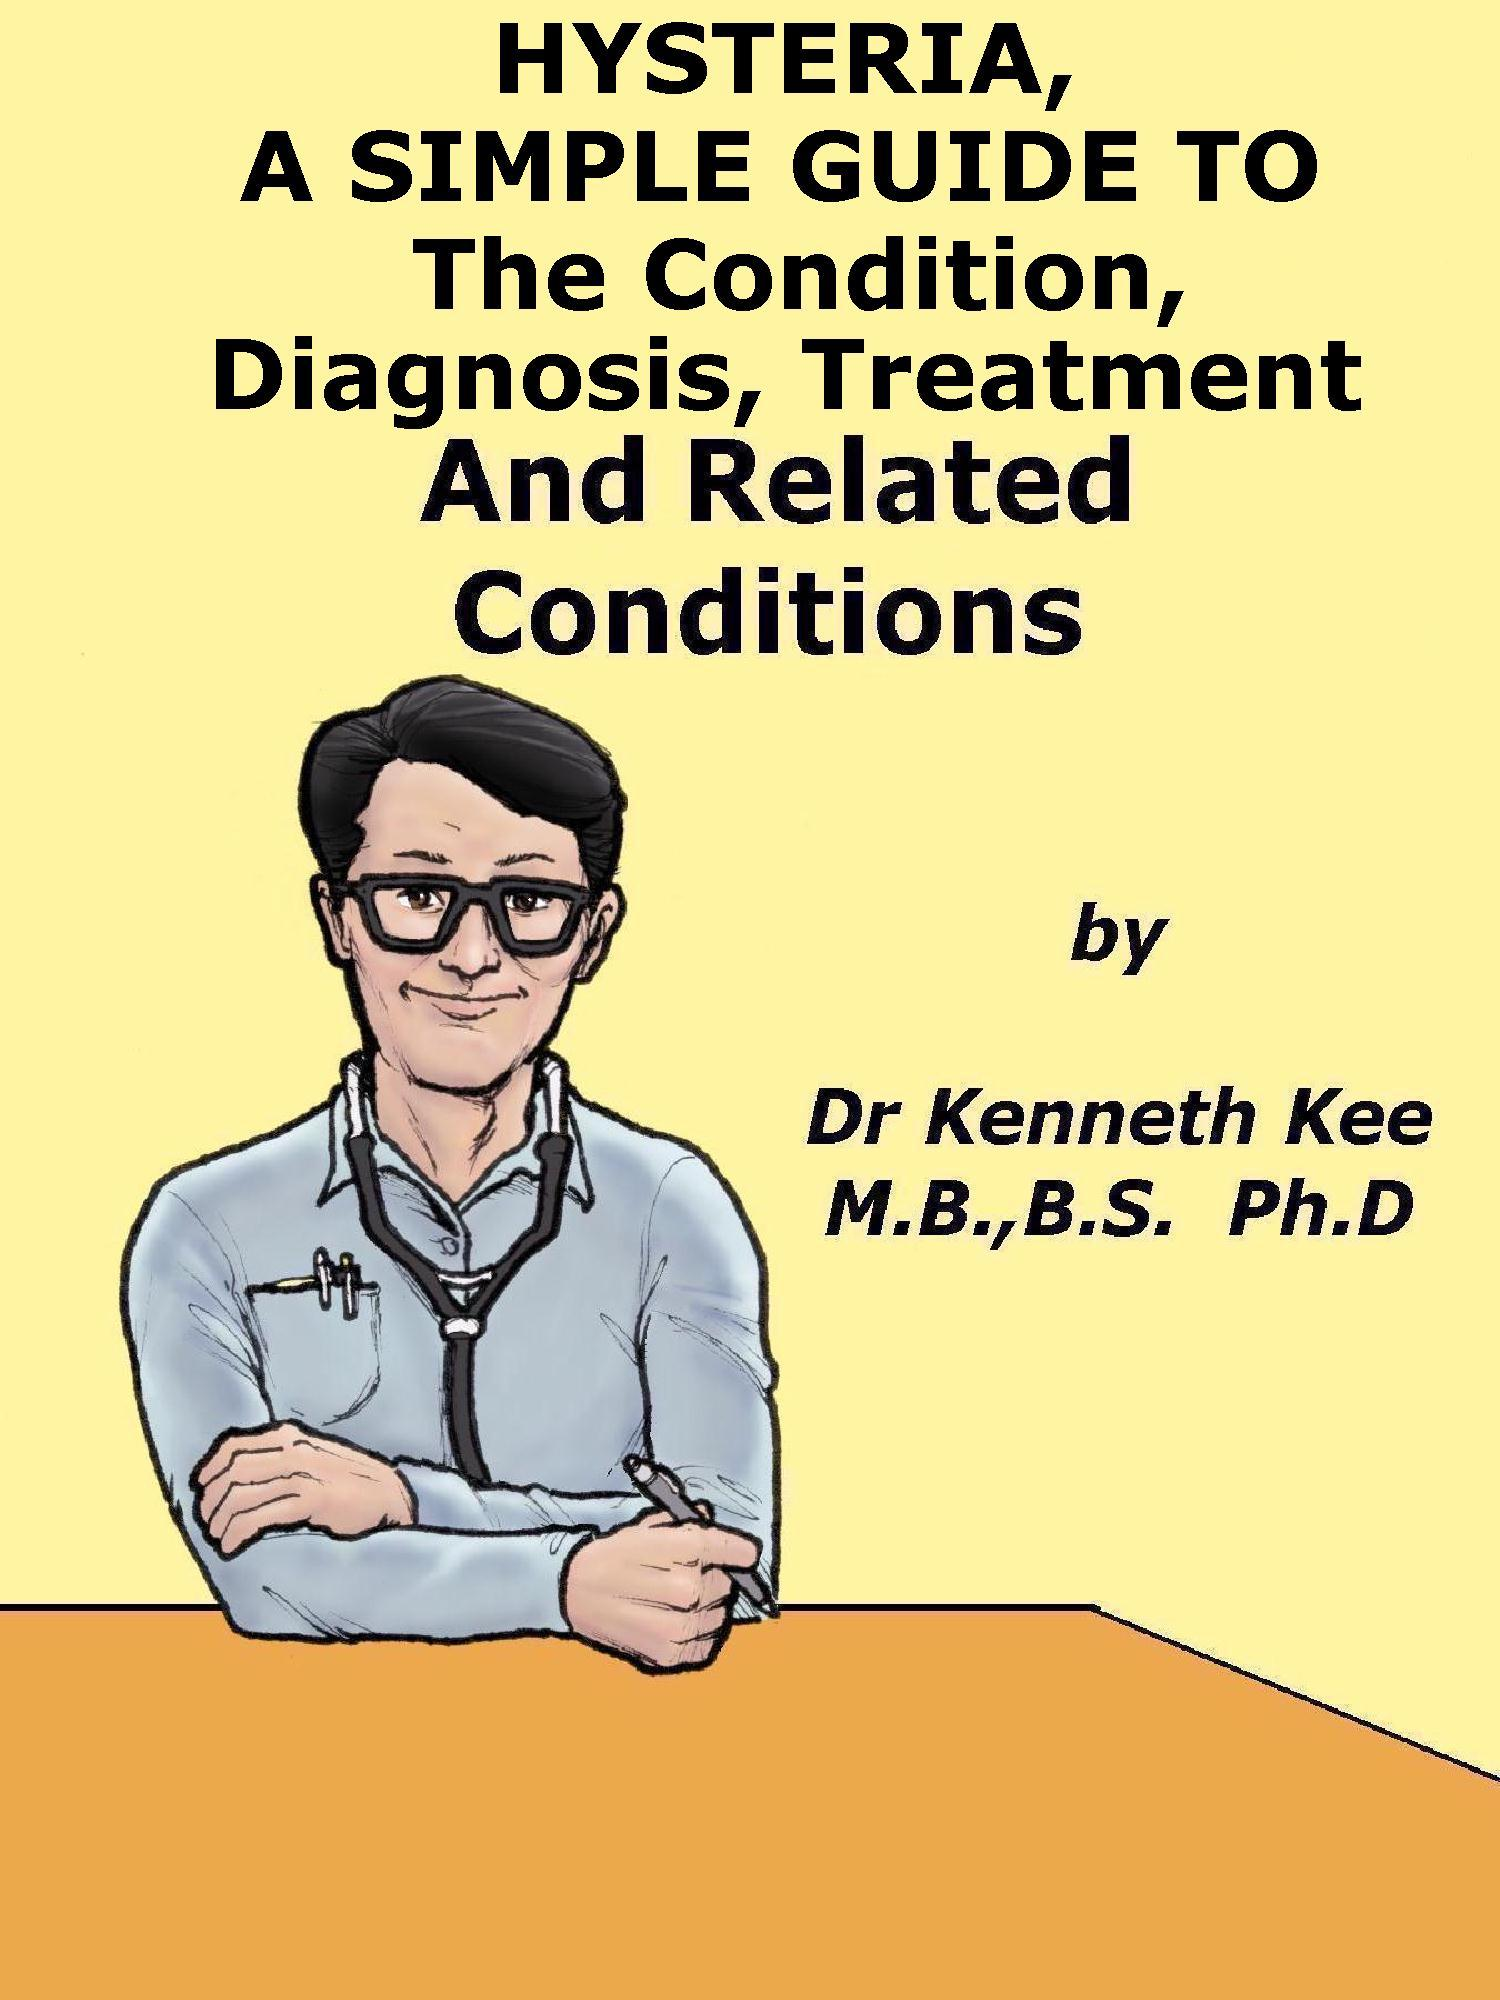 Hysteria, A Simple Guide To The Condition, Diagnosis, Treatment And Related Condition Kenneth Kee